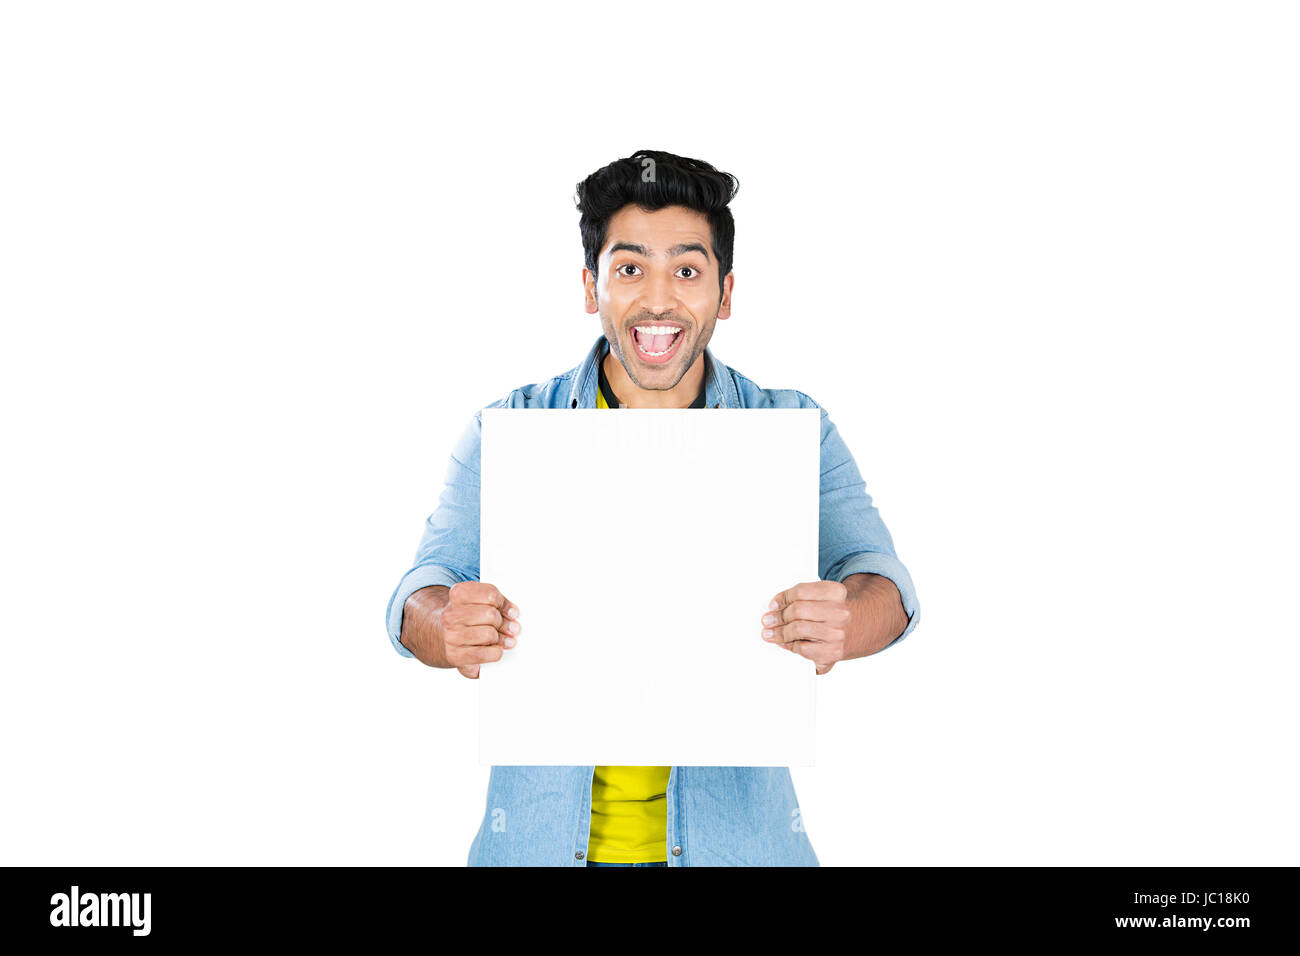 College Discount Message Board Showing Student Cheerful - Stock Image